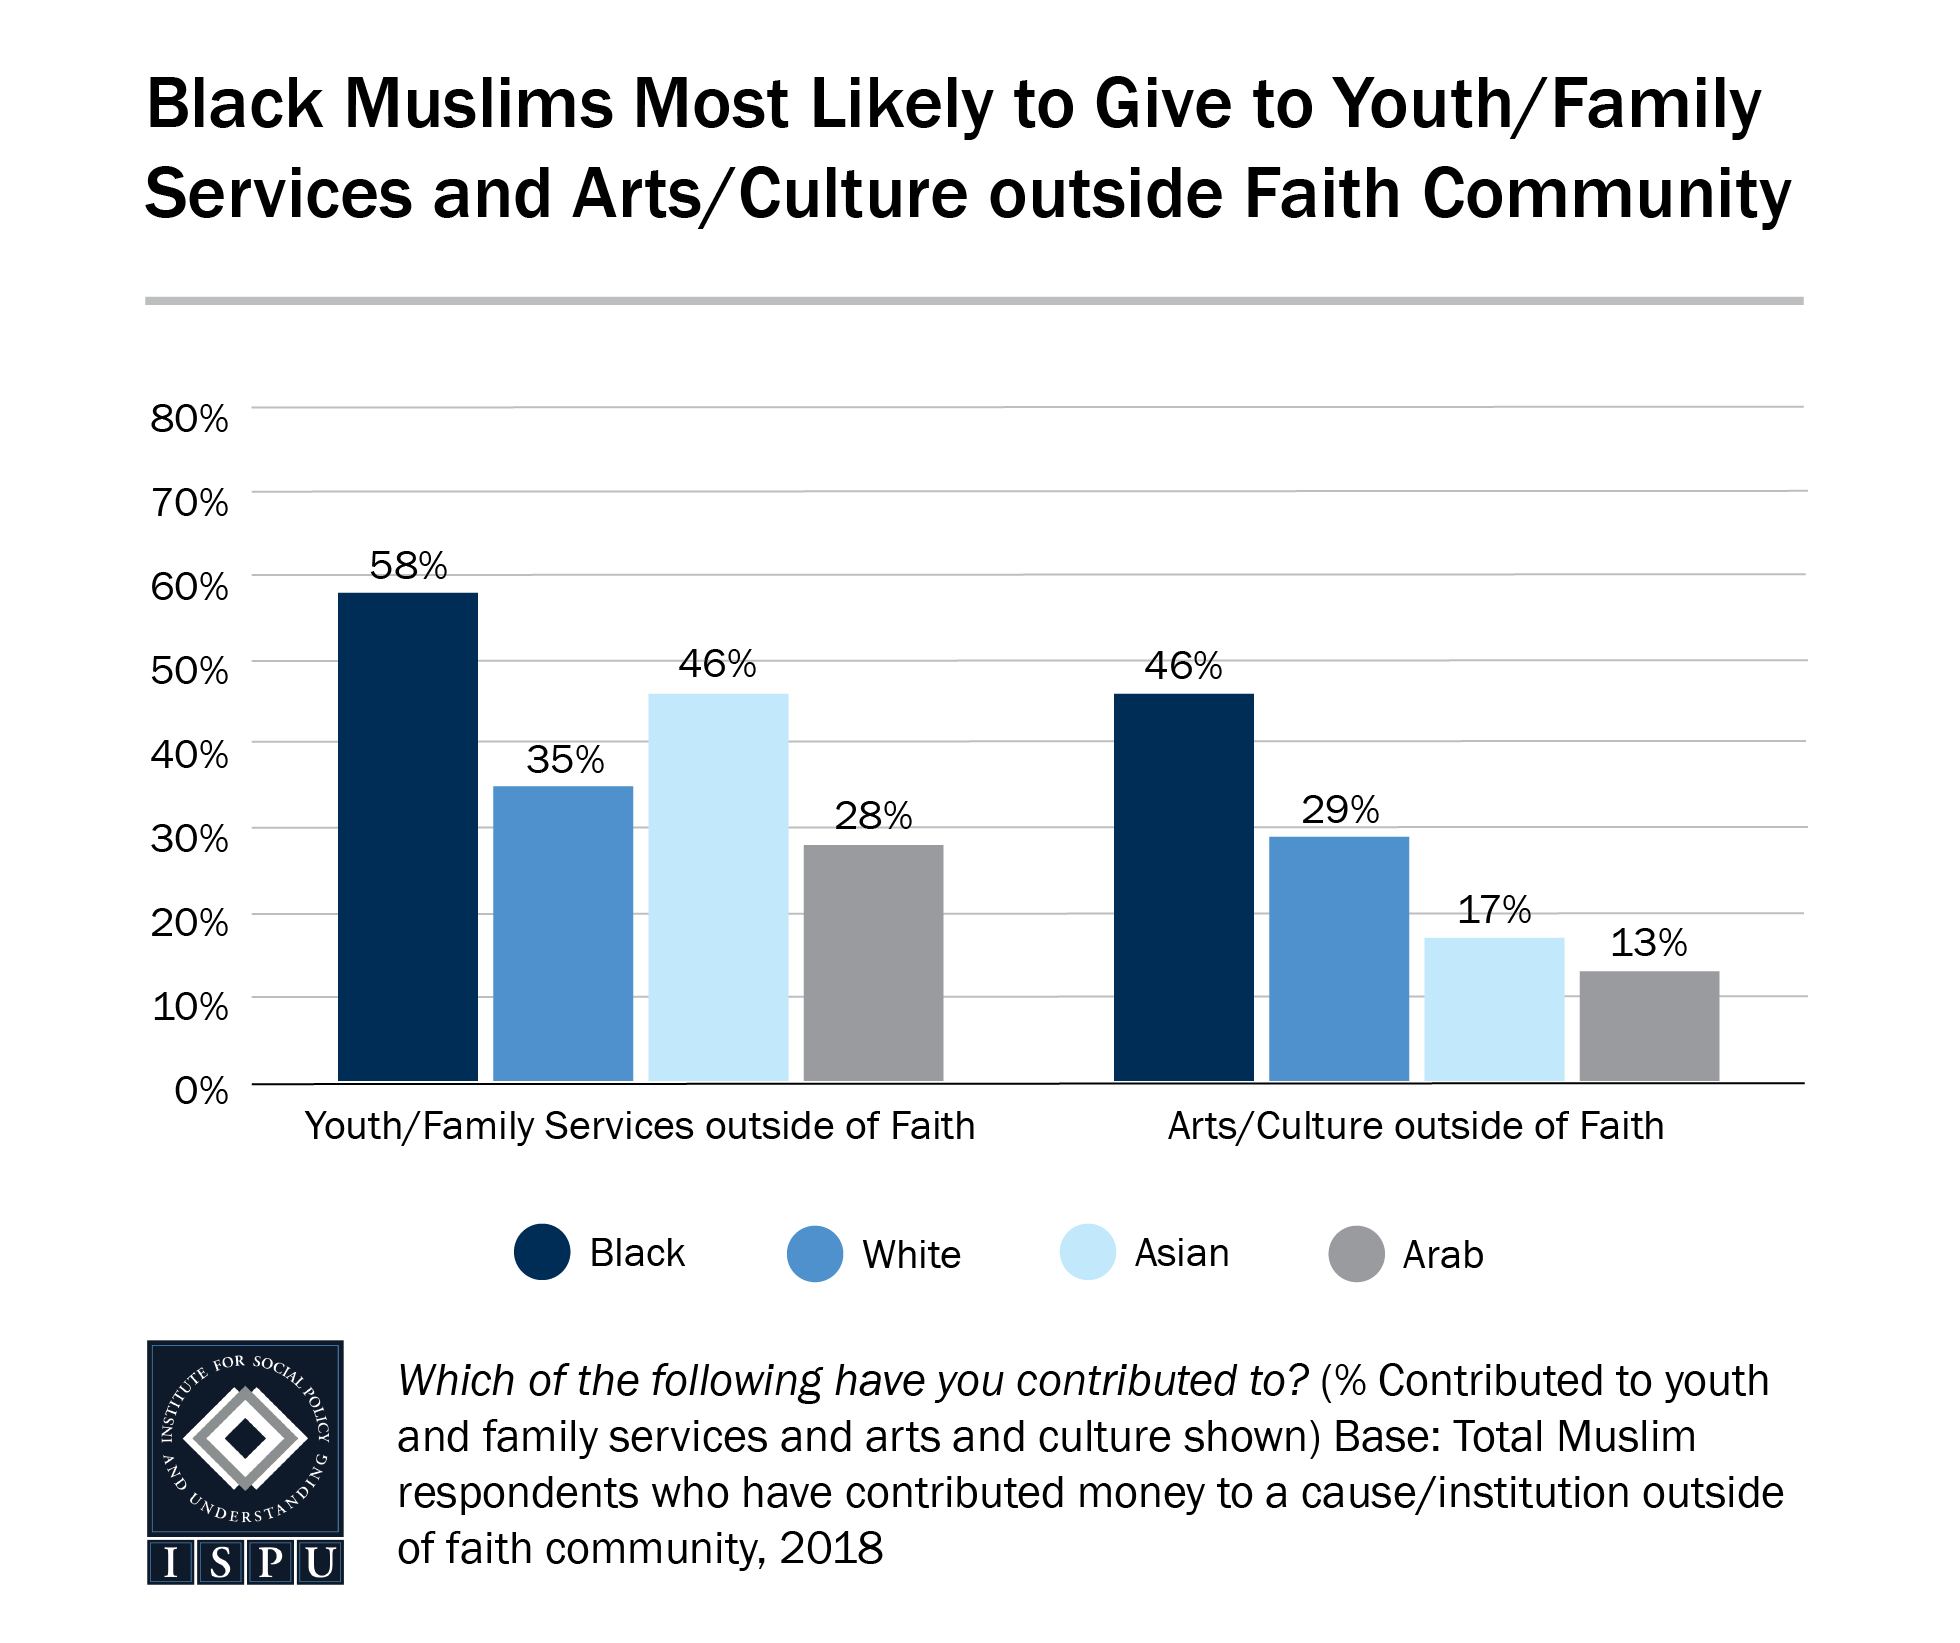 A bar graph showing that Black Muslims are the most likely to give to youth/family services and arts/culture organizations outside of their faith community